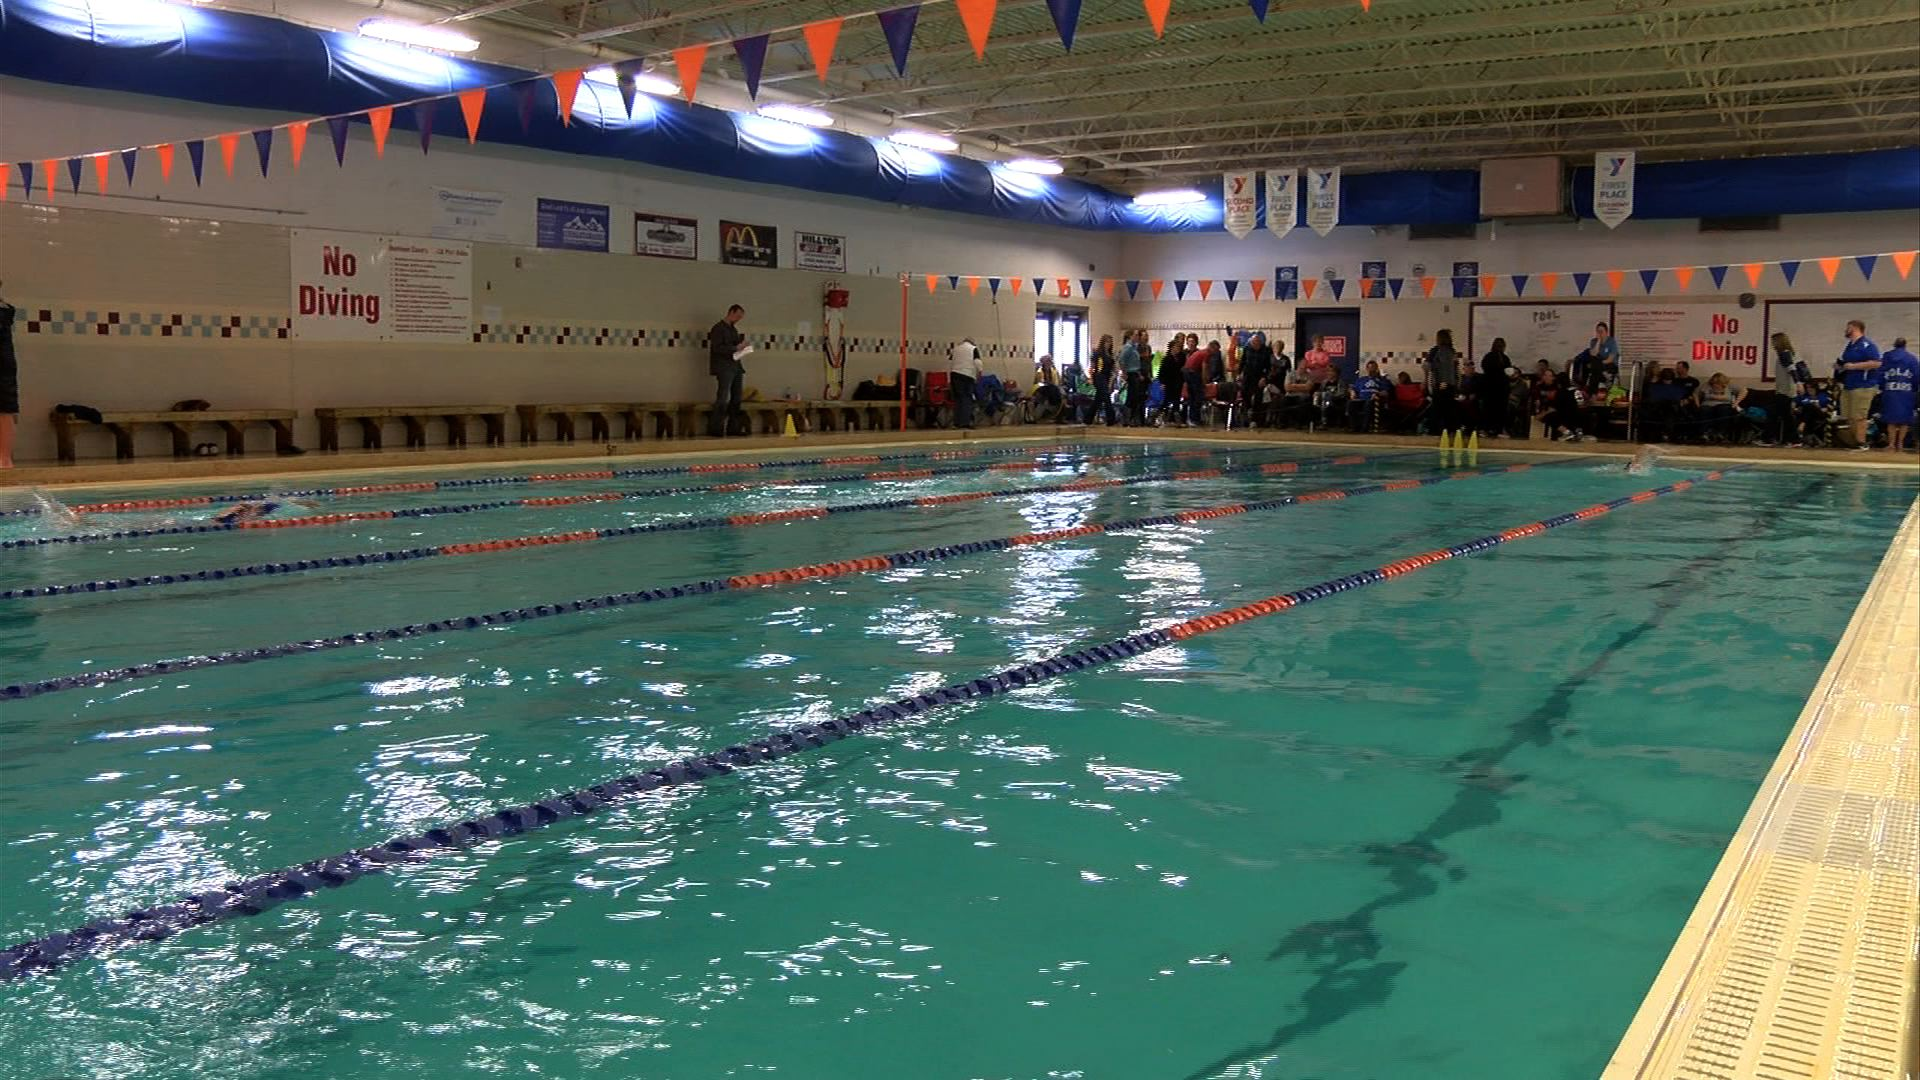 Wdtv com west virginia breaking news sports weather for Westhill swimming pool phone number